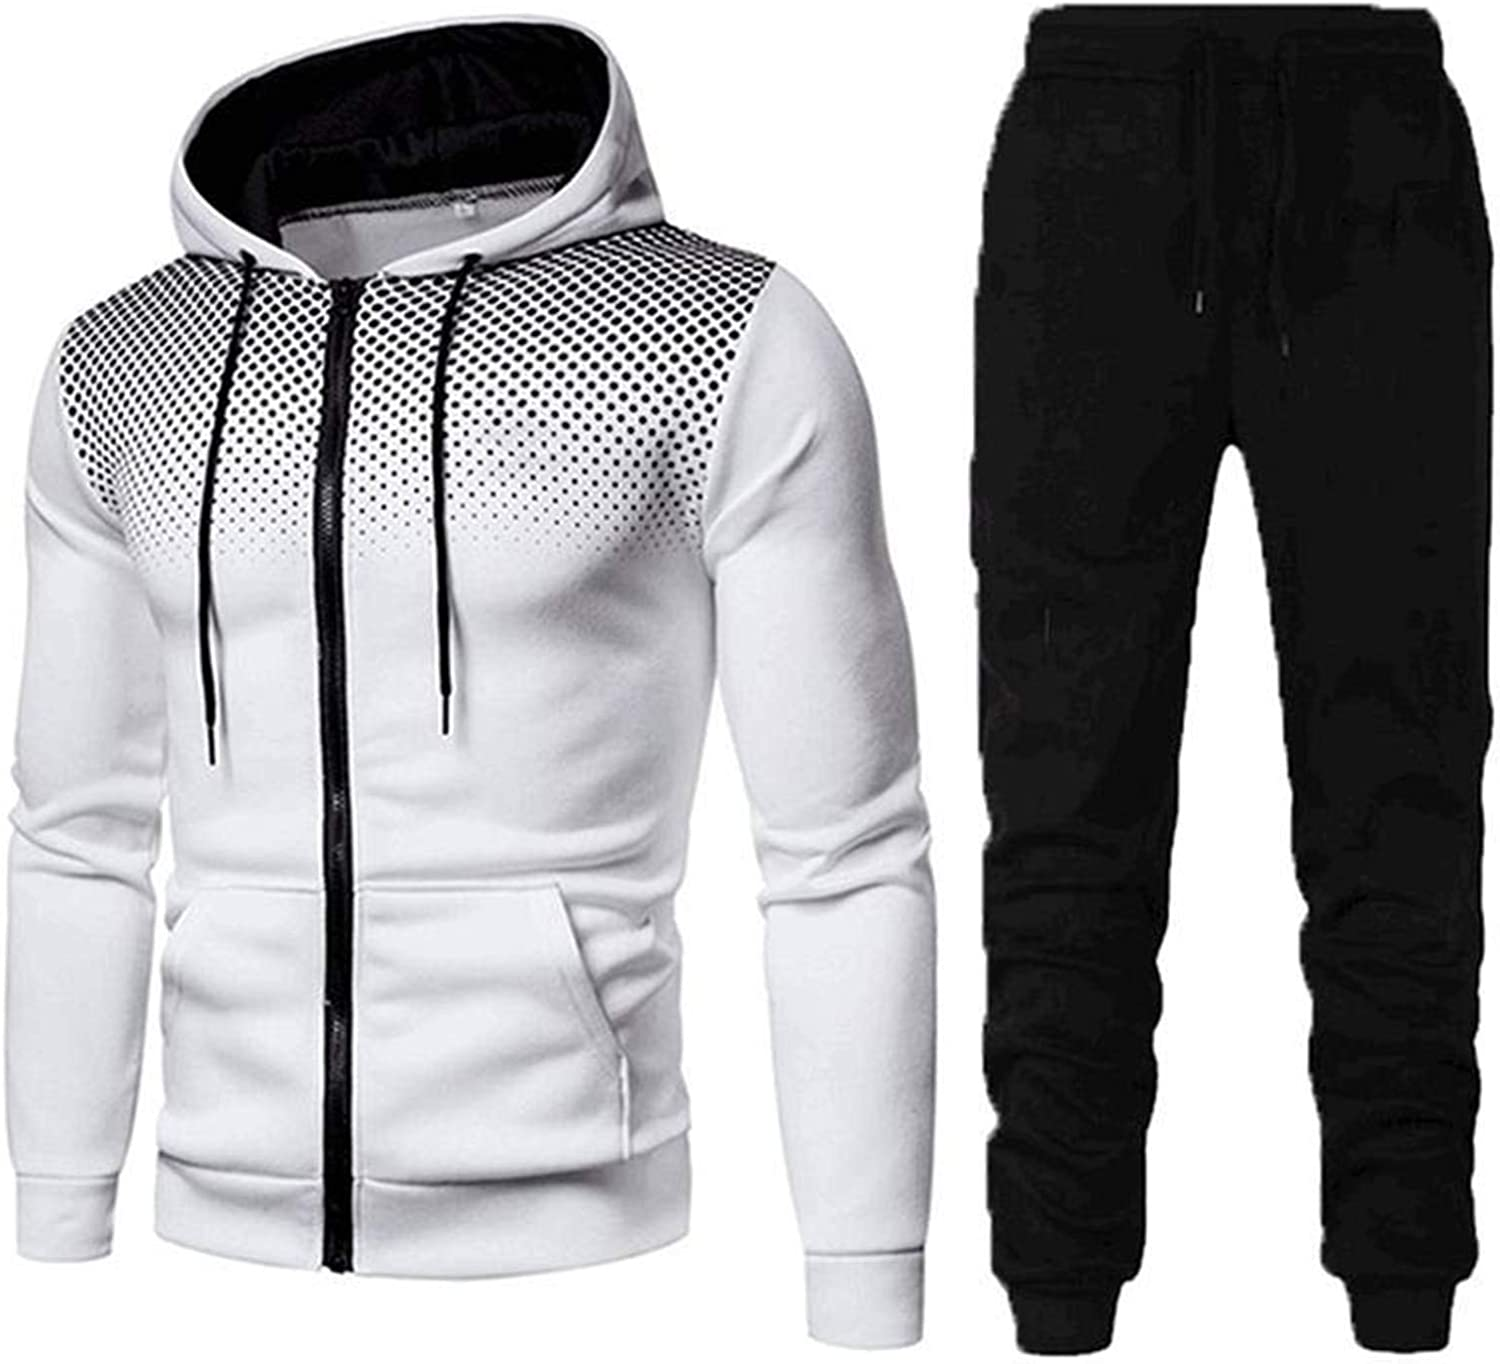 Aayomet Men's Tracksuit Casual Joggers Hoodie Sweatshirt Pants Set Two Piece Sweatsuits Outfits Sports Suit Activewear